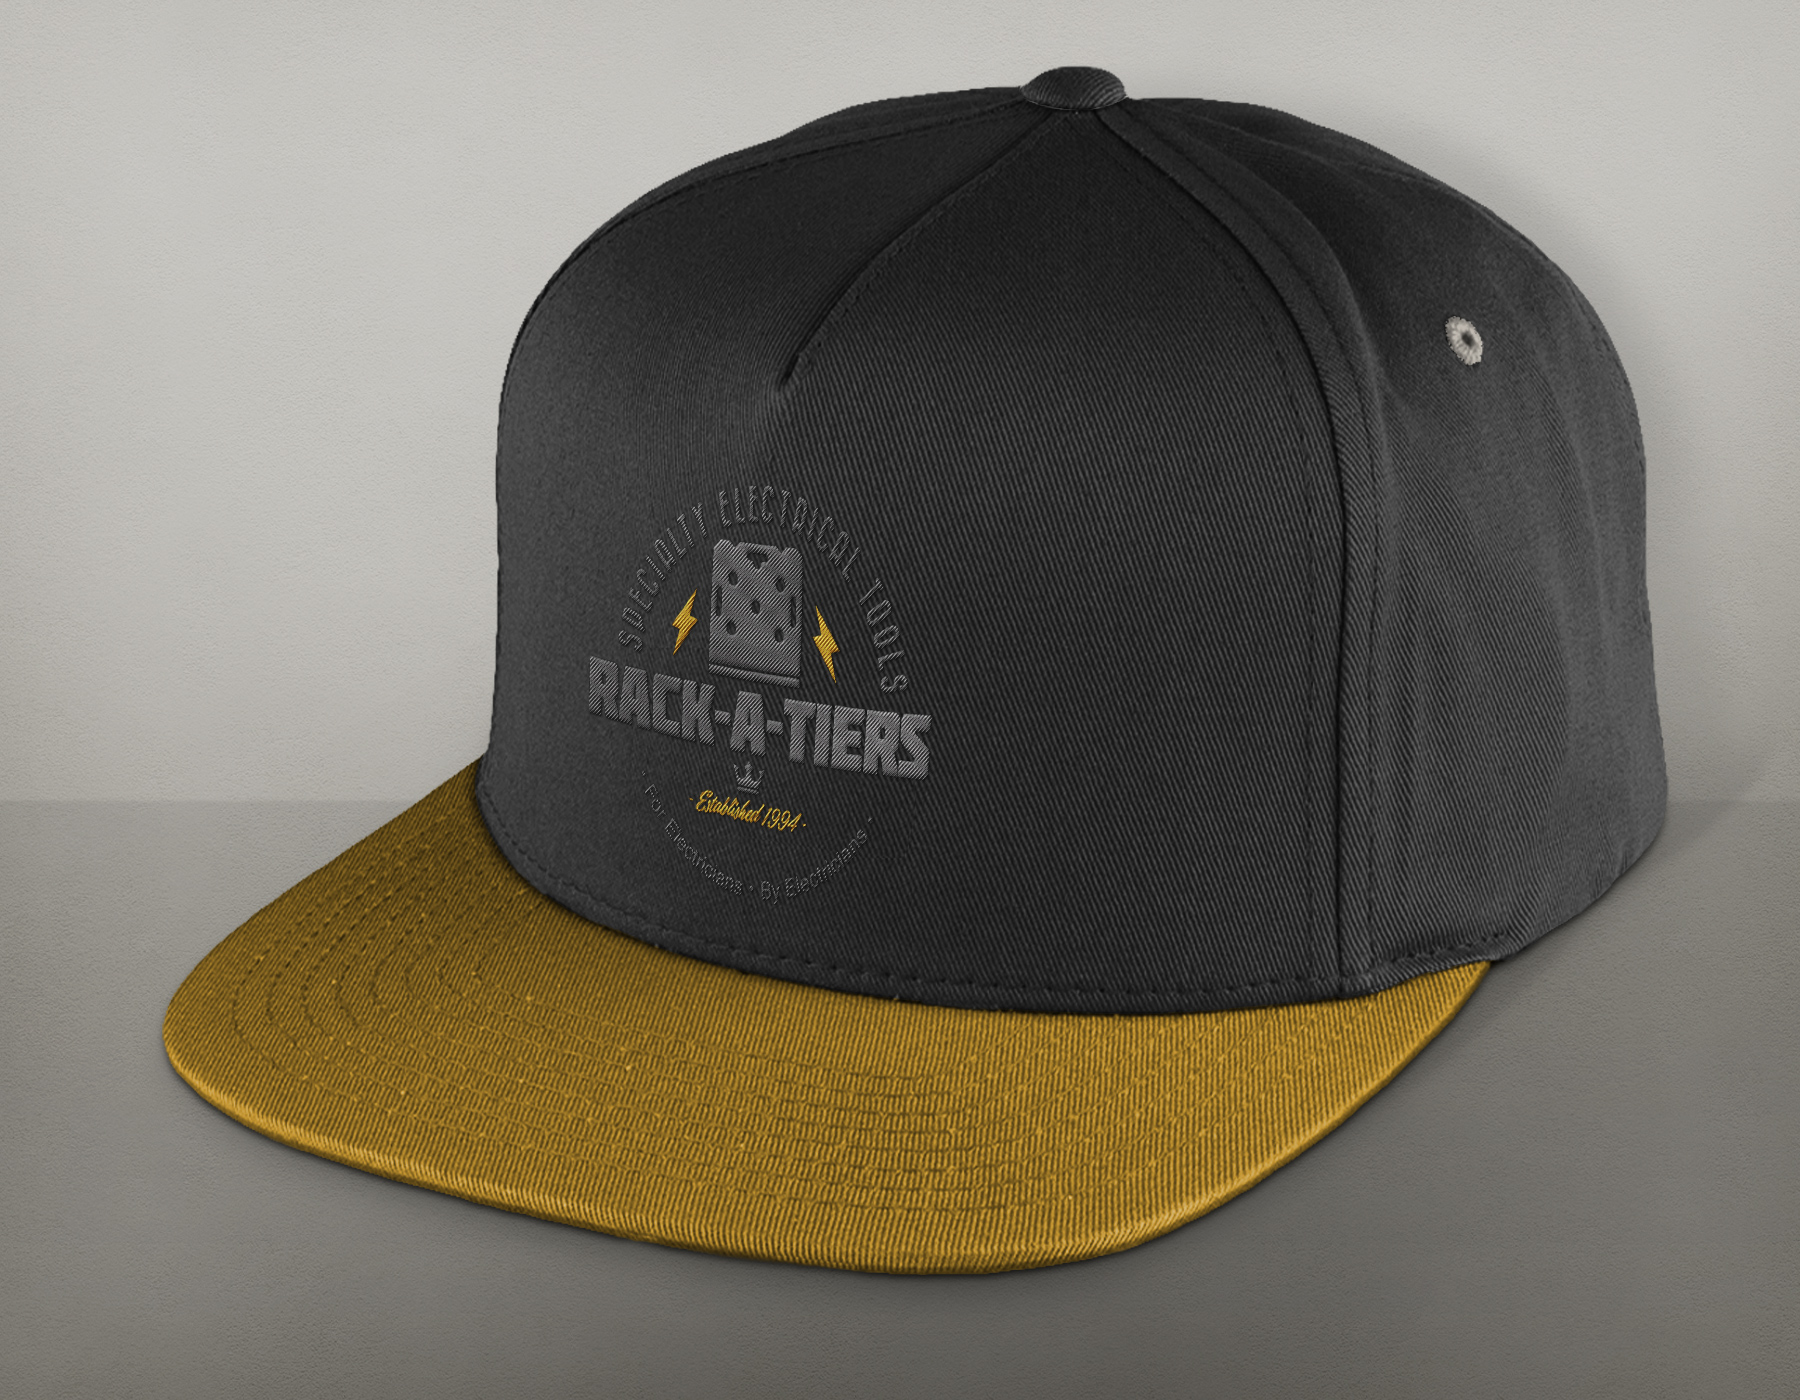 Logo / Embroidery Design: Rack-A-Tiers MFG